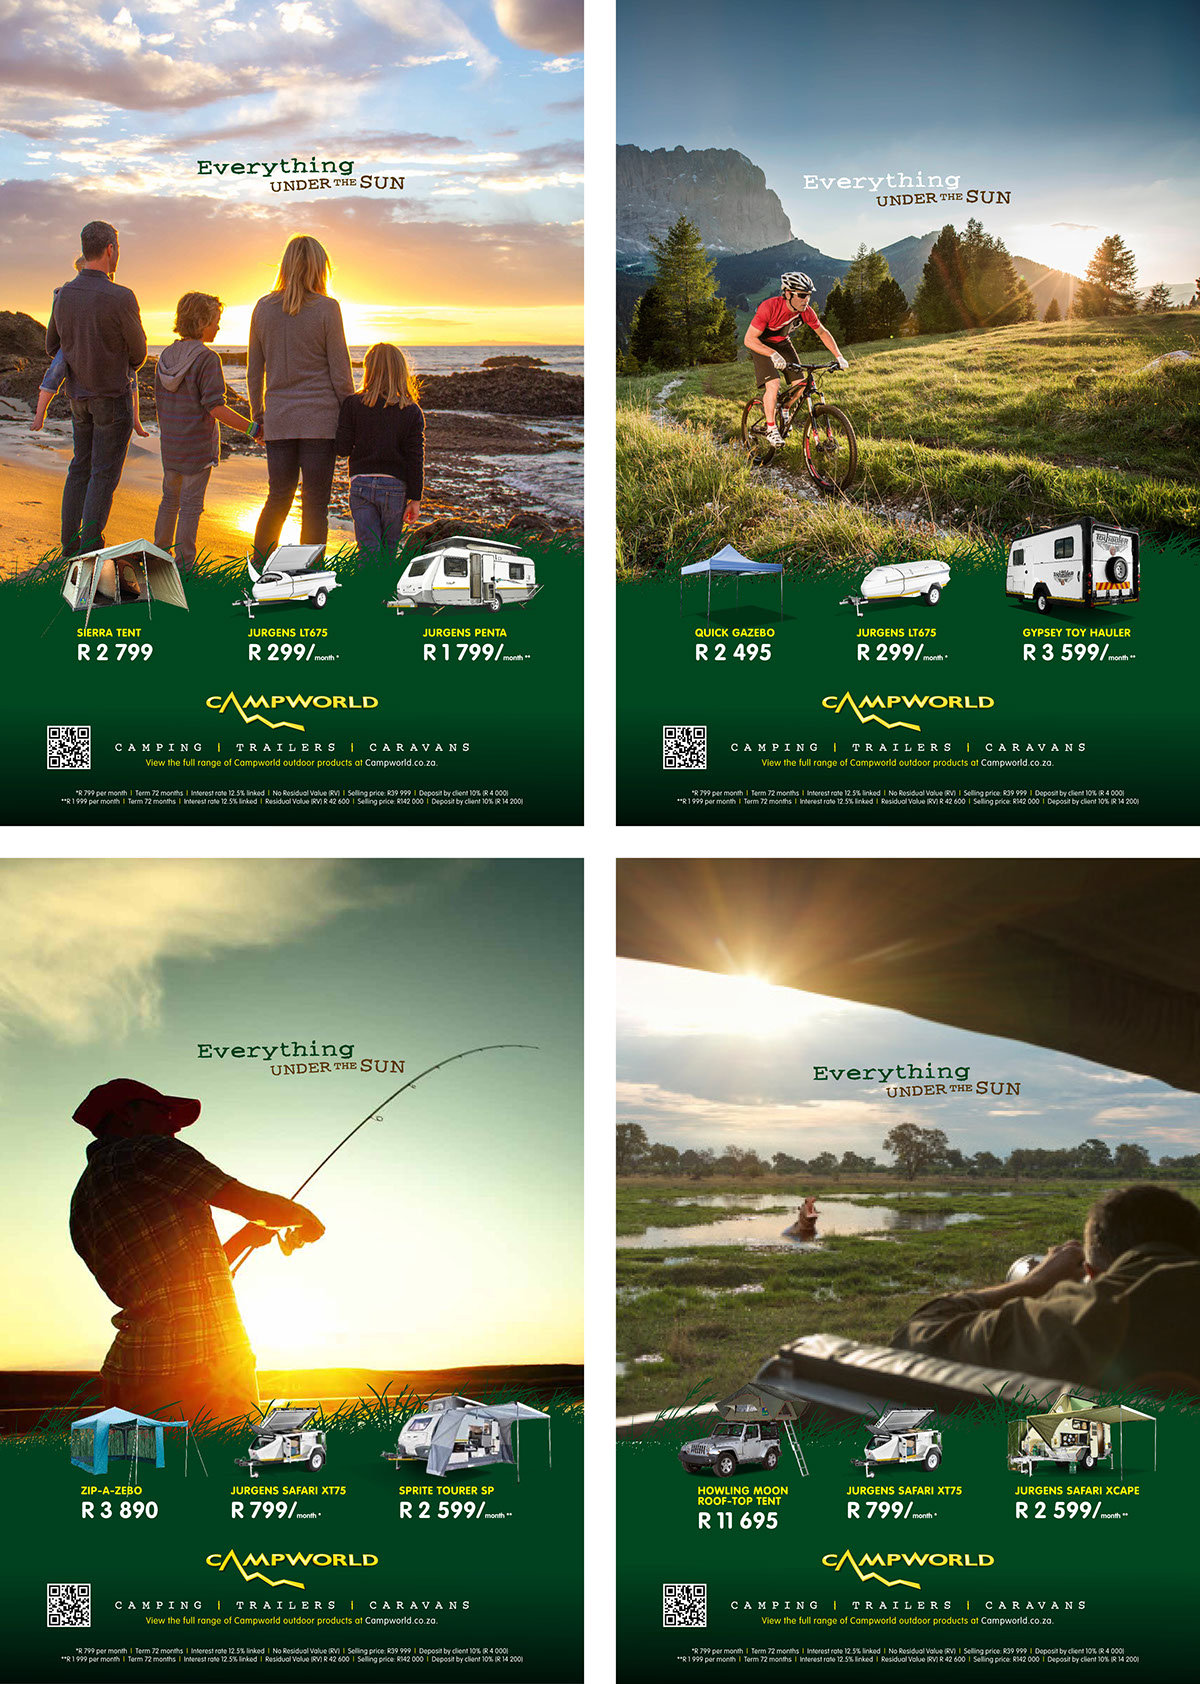 print advertisements on  4 of 8 full page ads for campworld campaign themes and product offerings were specific to the various publications responsible for client service